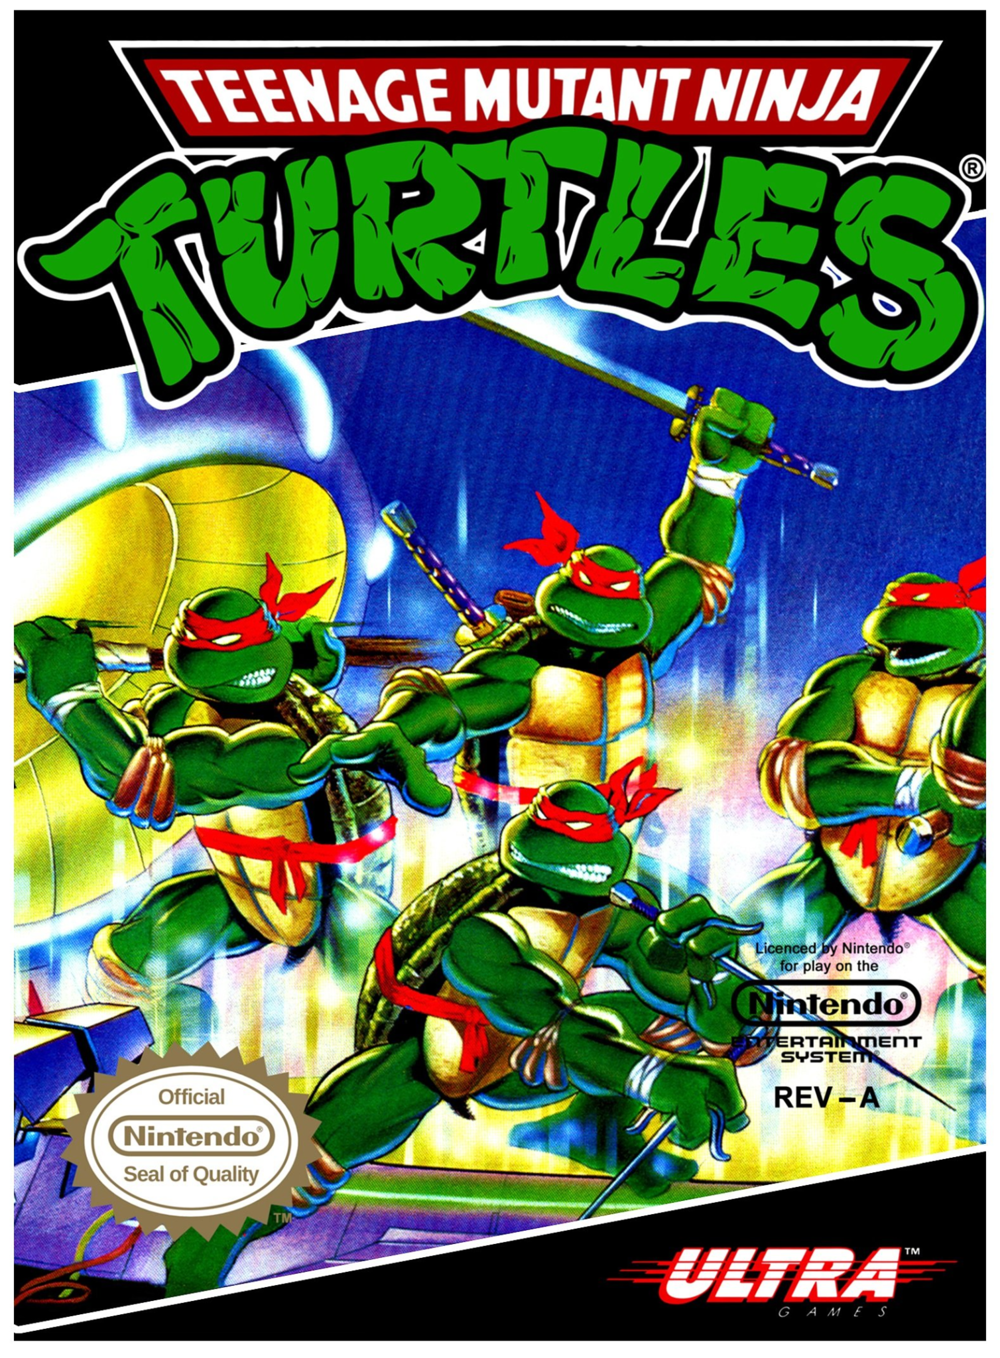 Turtles frustrate gamers with honor!